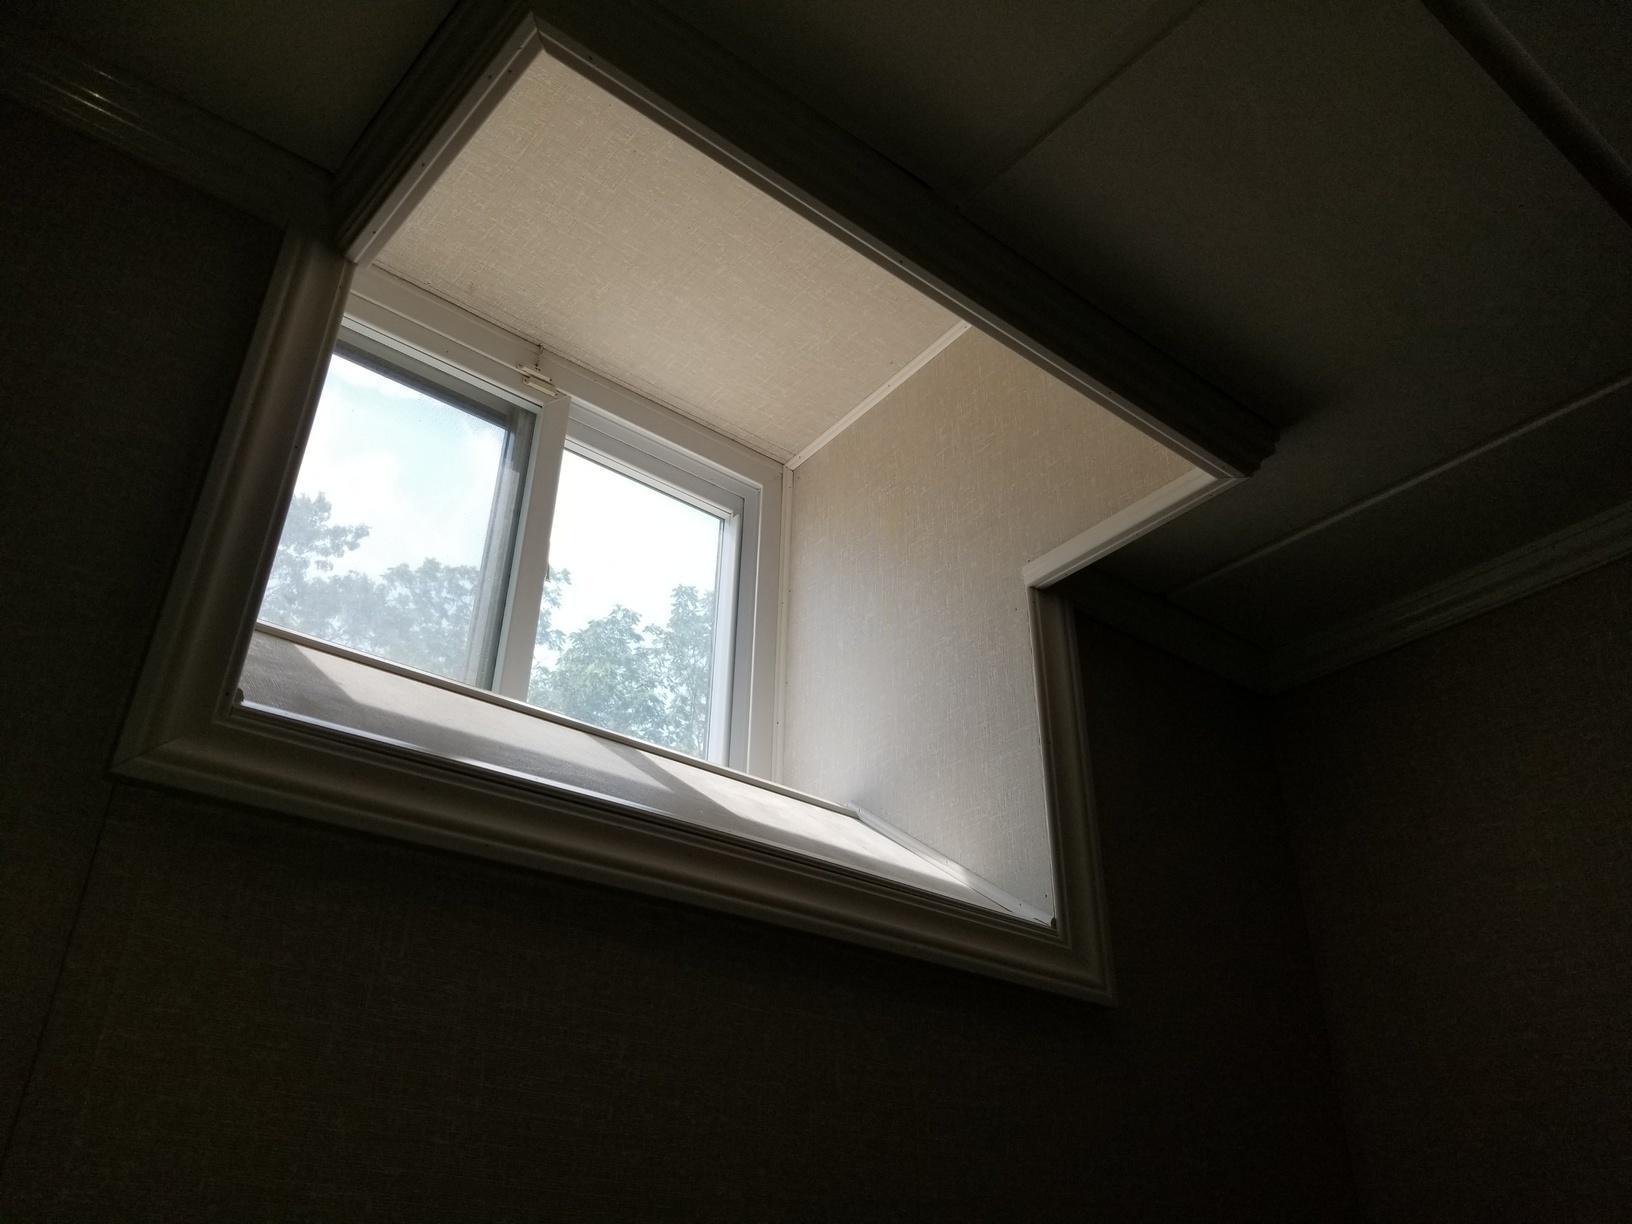 Window all boxed out